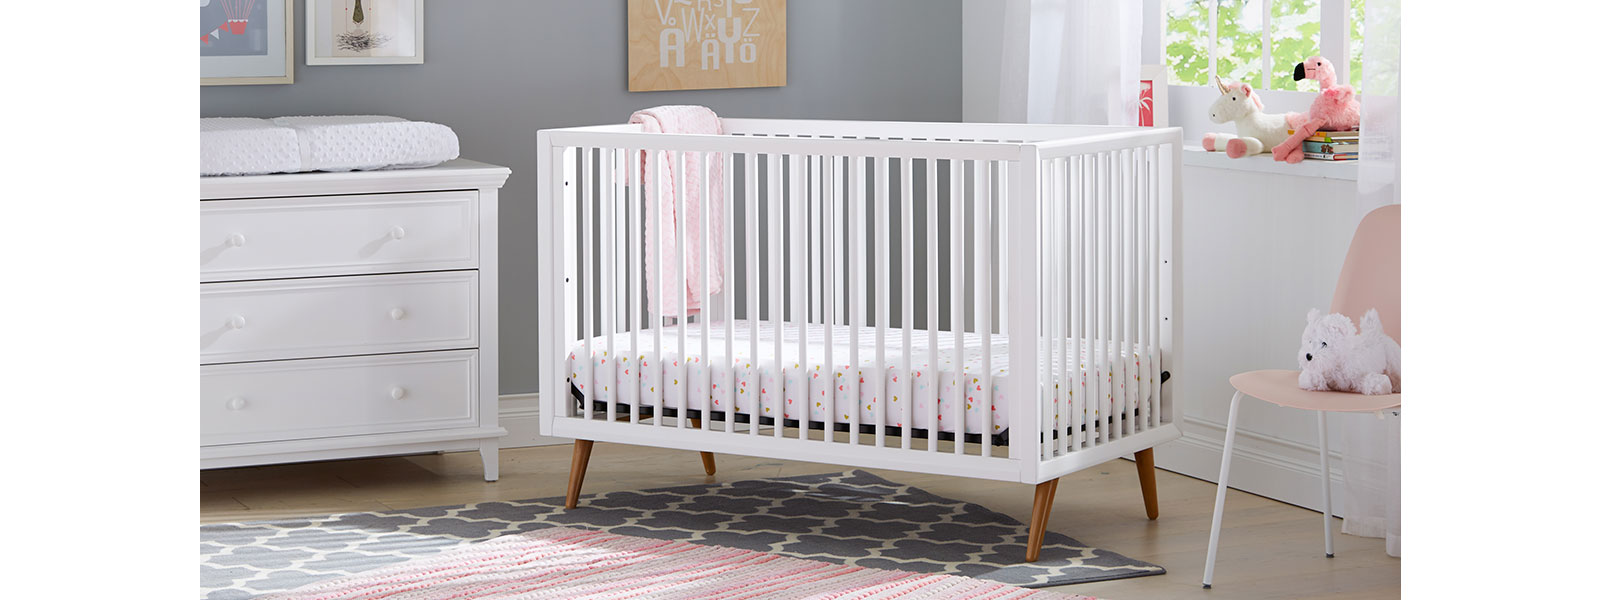 3 in one crib instructions